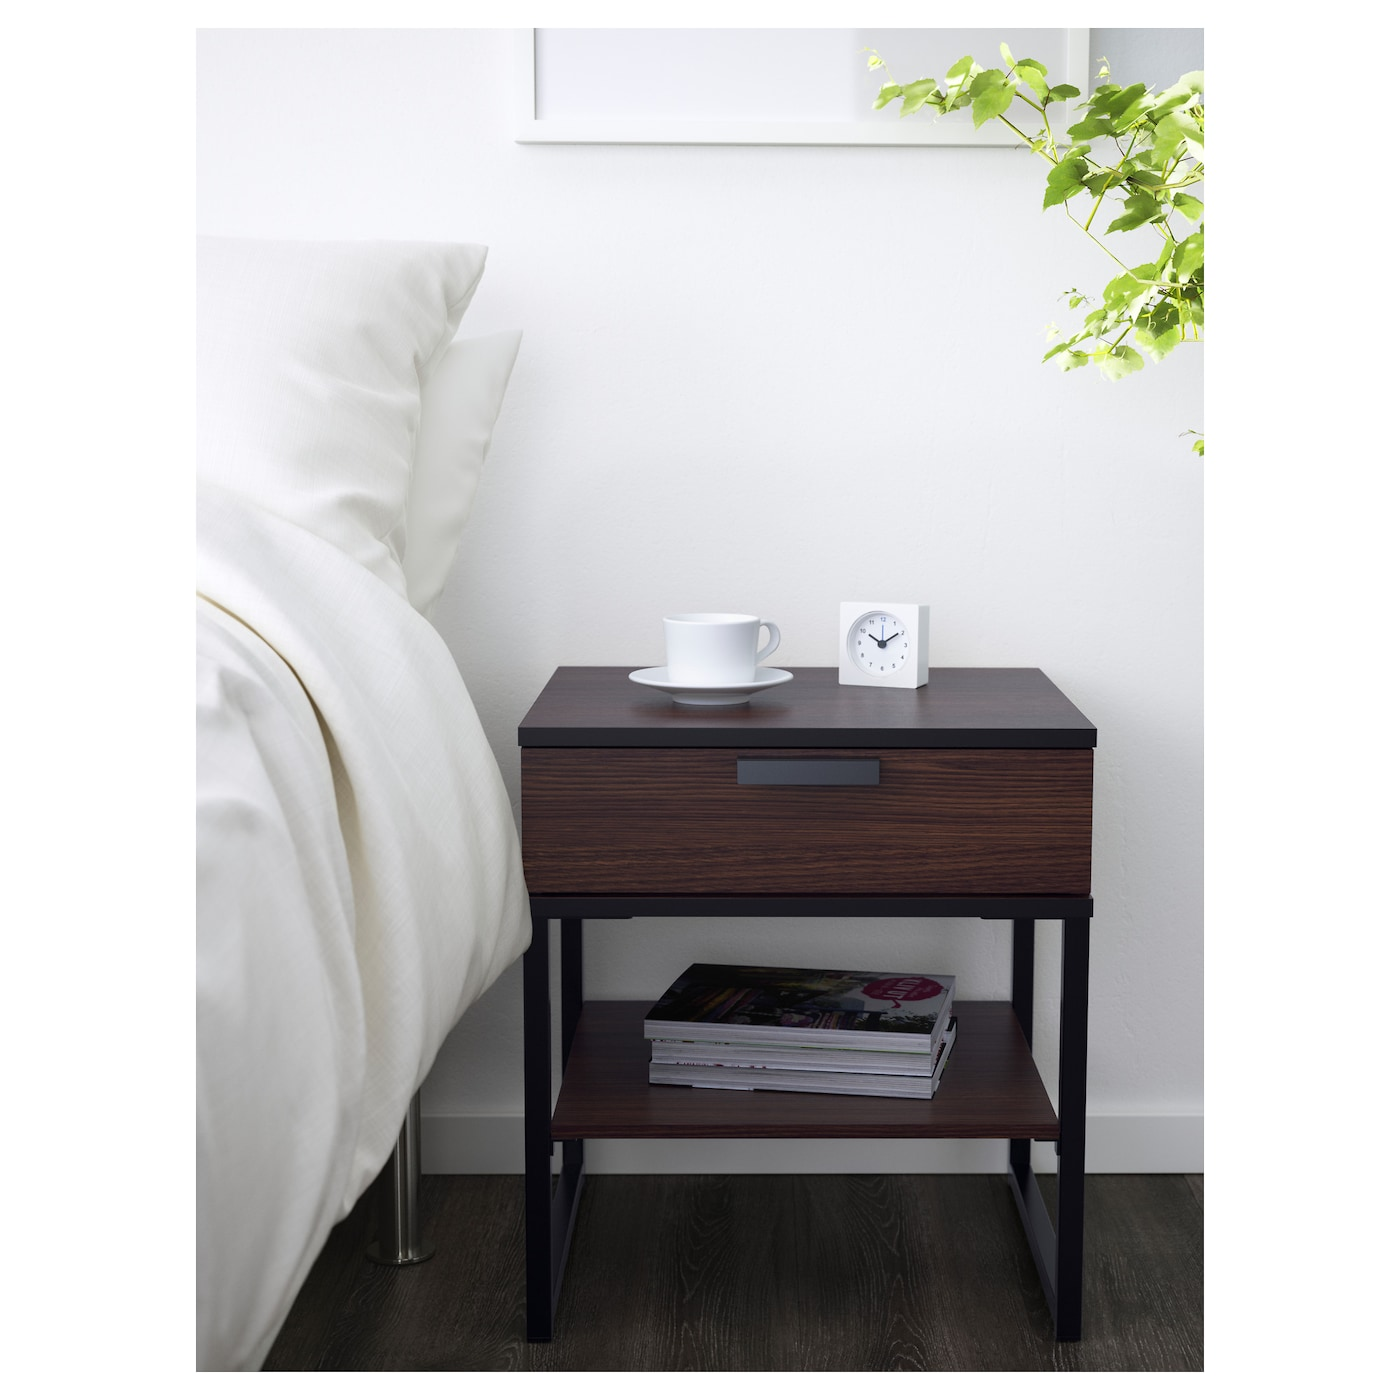 trysil table chevet brun fonc noir 45x40 cm ikea. Black Bedroom Furniture Sets. Home Design Ideas